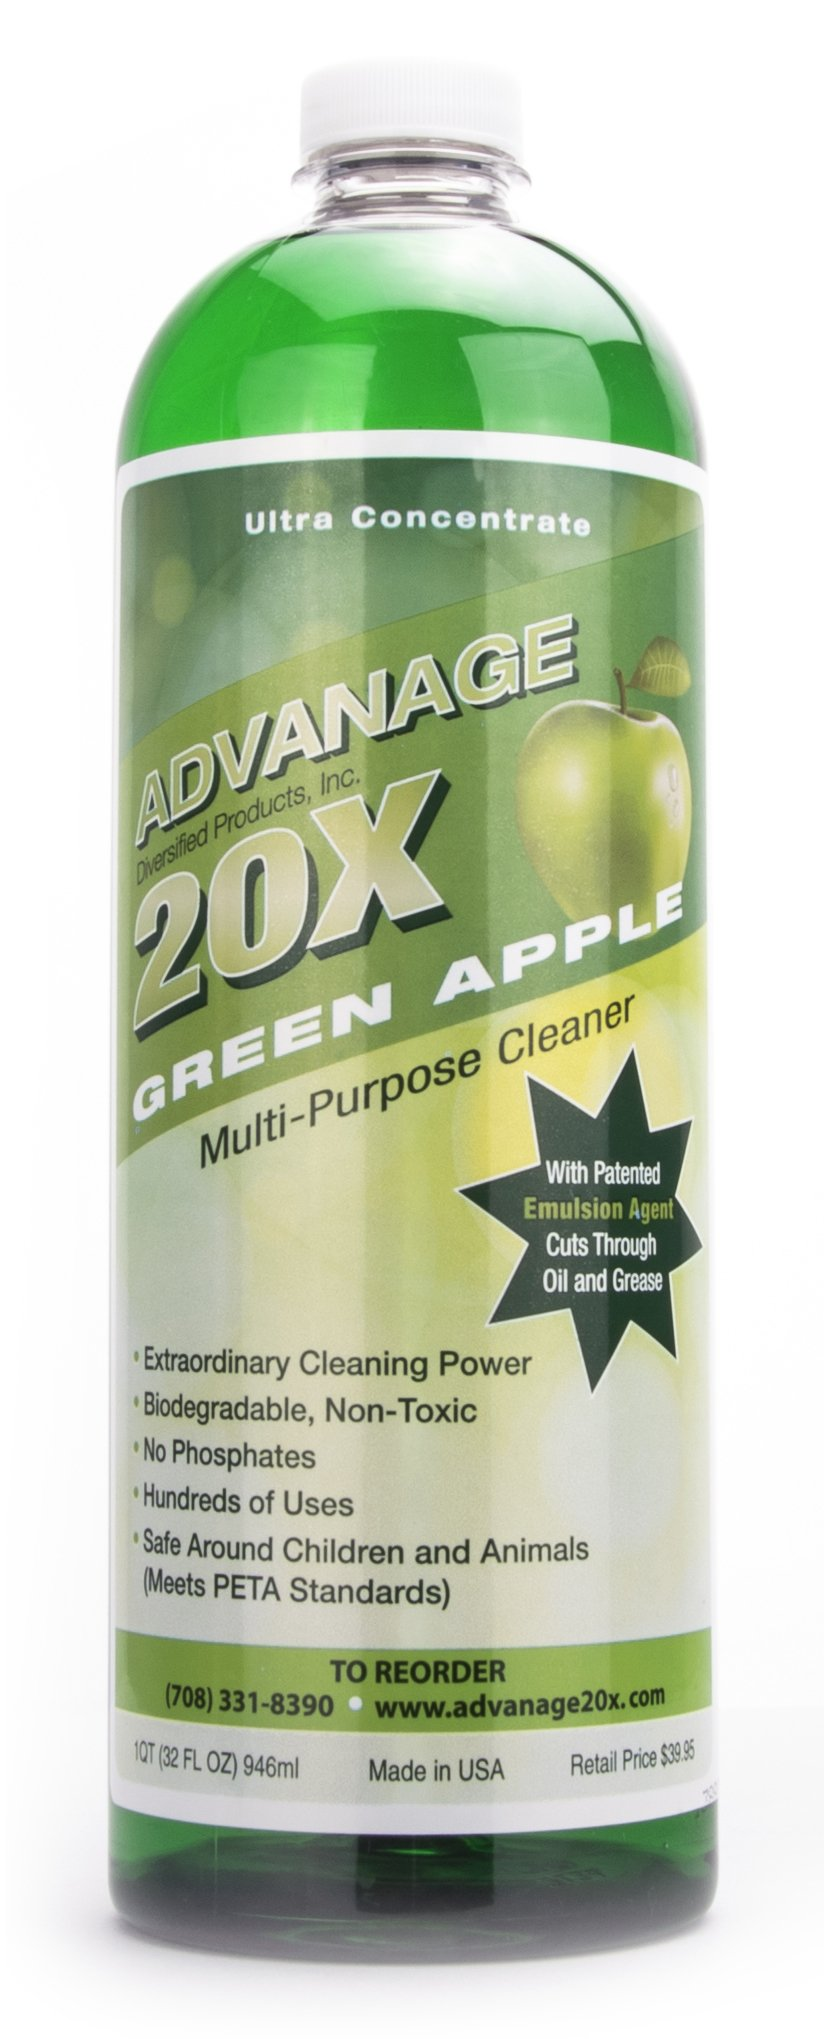 ADVANAGE the Wonder Cleaner 20X Multi-Purpose | Ultra Concentrated Formula, Makes 20 Quarts | Eco Friendly | Child and Pet Safe | Non Toxic & Biodegradable | Green Apple Scented | 32 fl oz Bottle